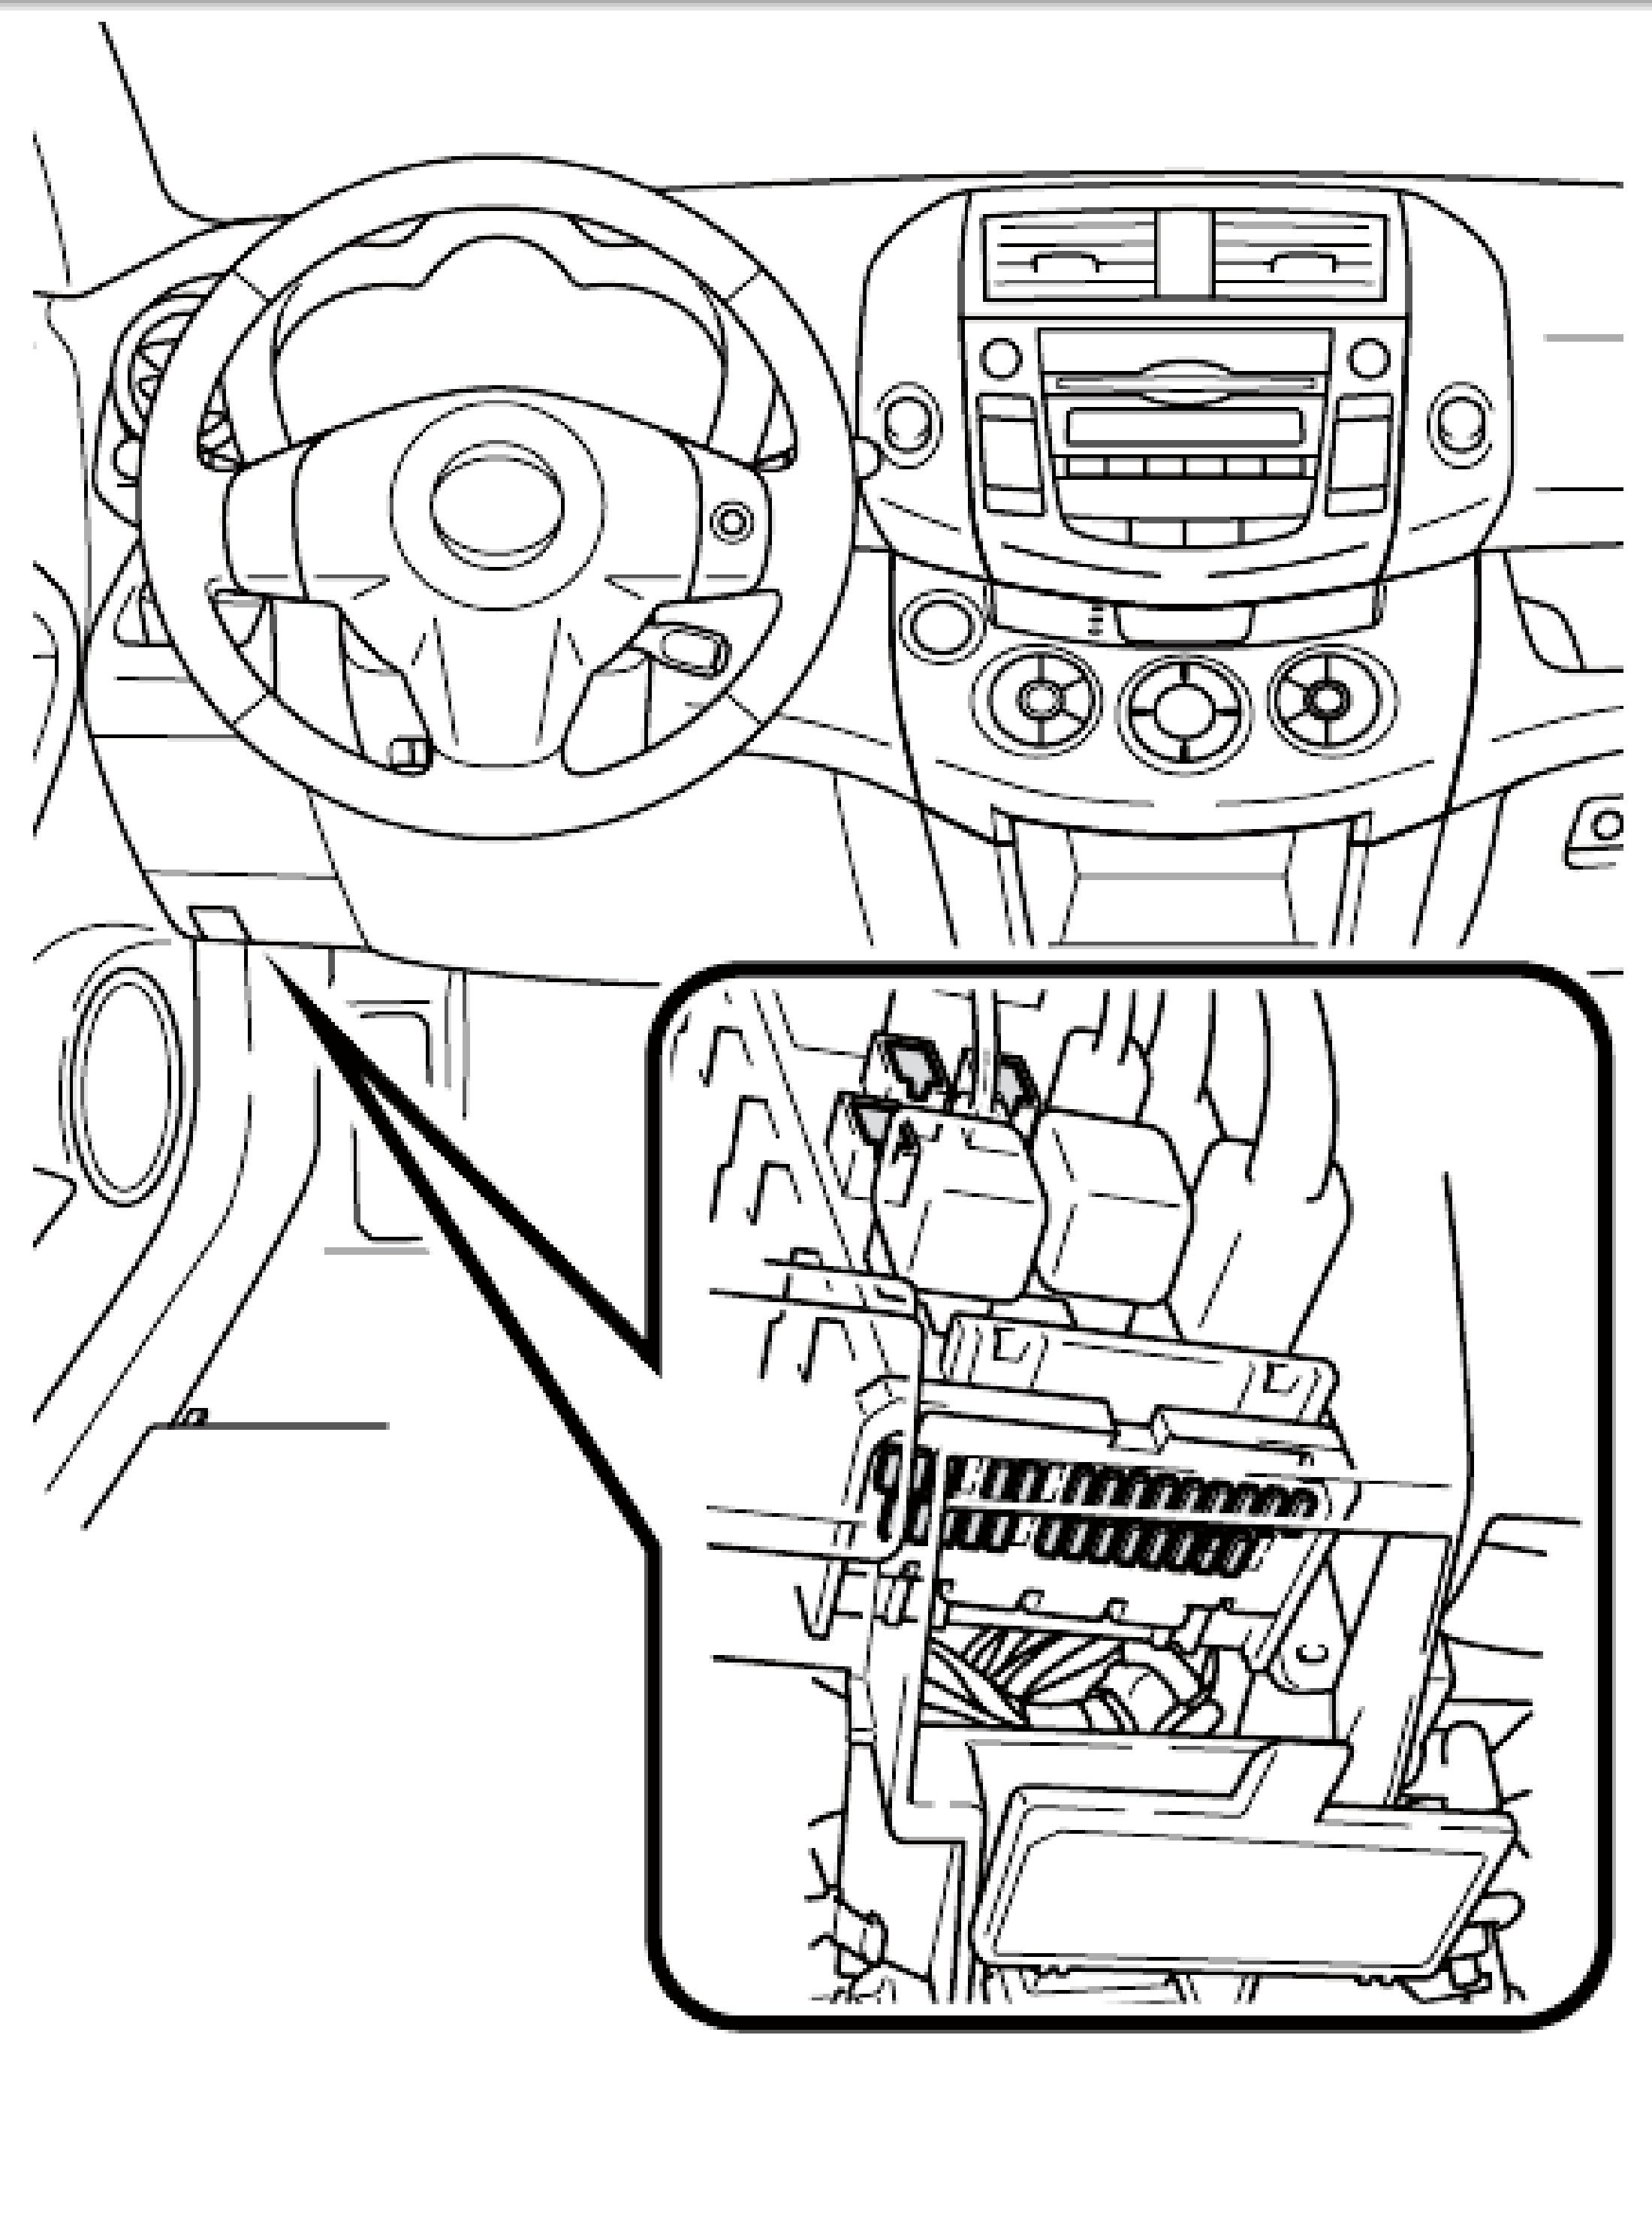 Isuzu Npr Fuse Diagram